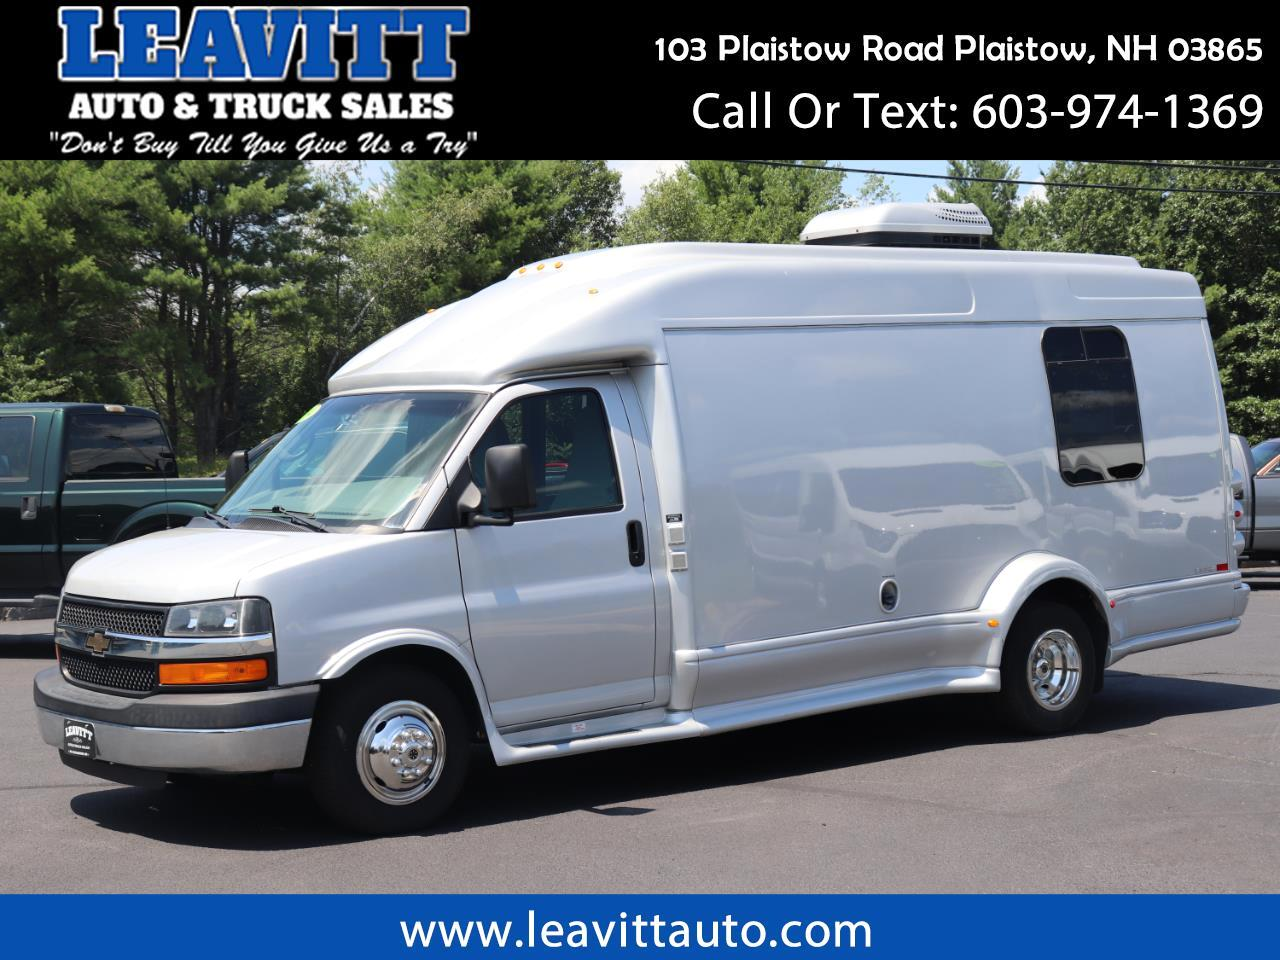 2014 Chevrolet Express G3500 CUSTOM MINI BUS